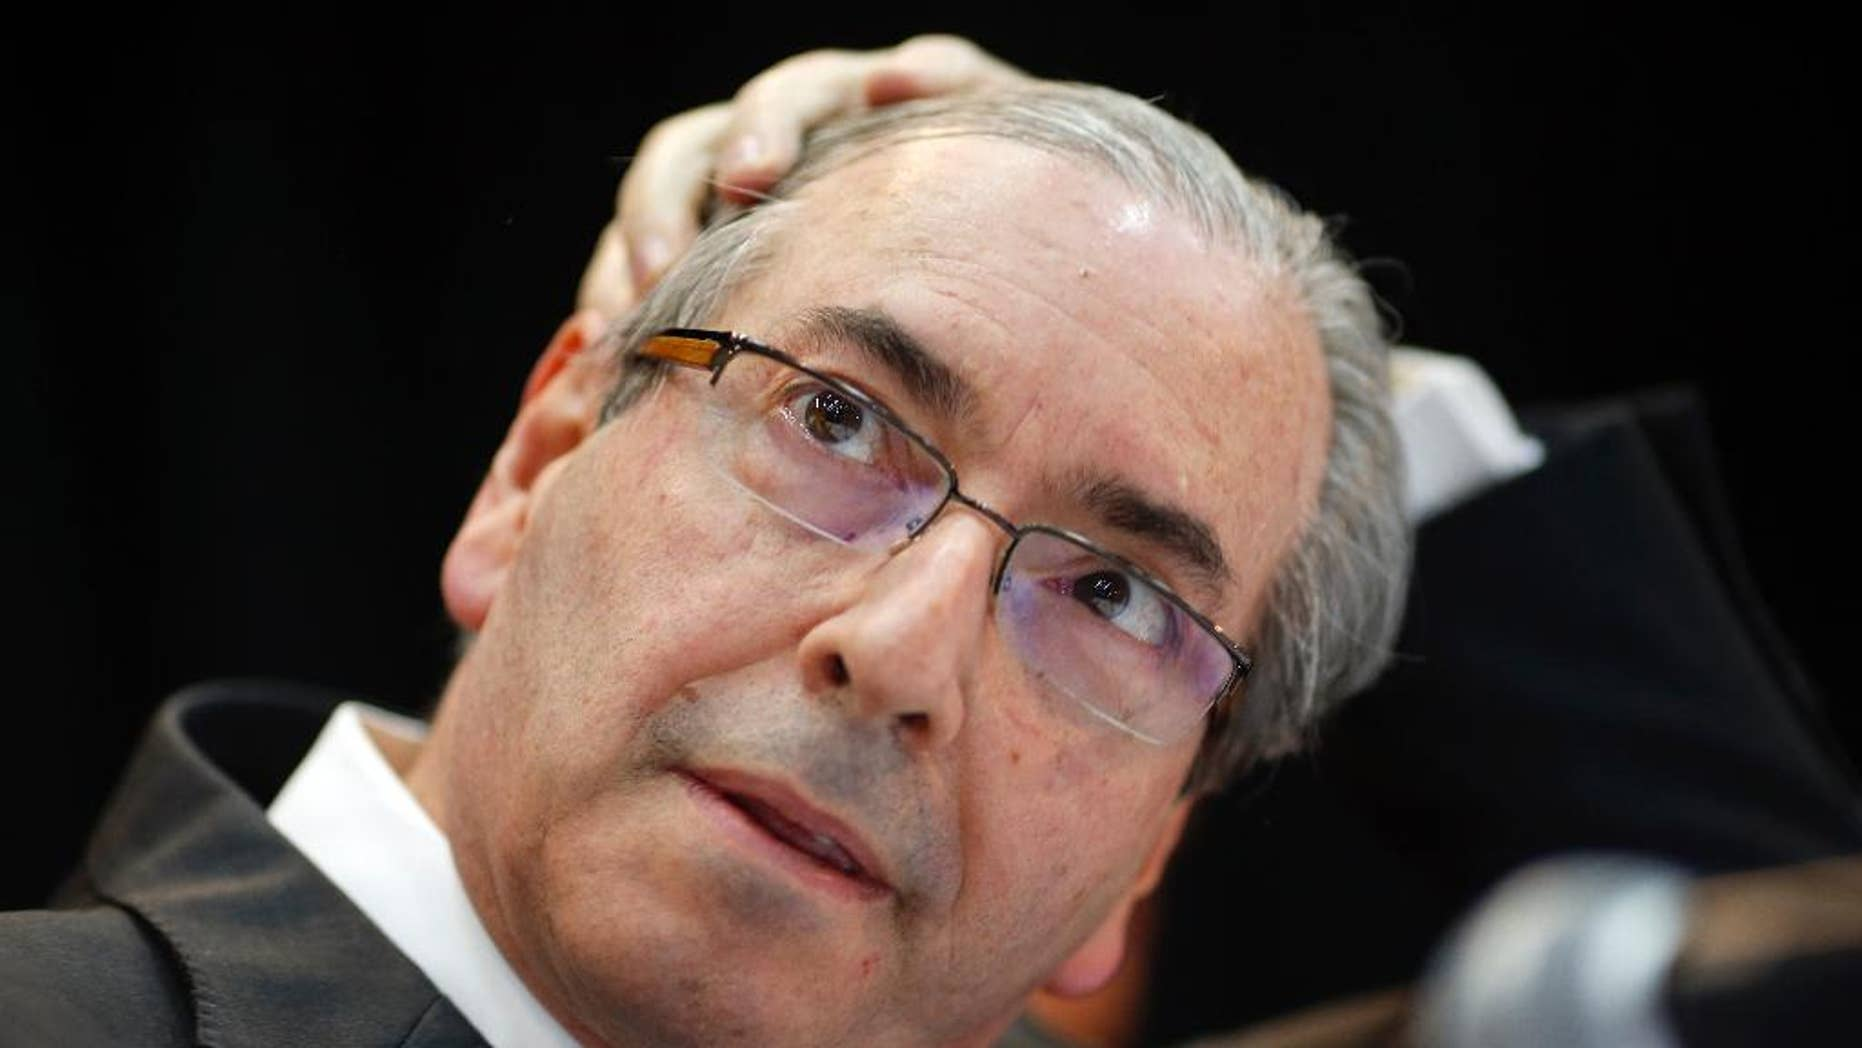 FILE - In this Aug.21, 2015 file photo, Eduardo Cunha, president of Brazil's Chamber of Deputies, attends a meeting with union workers in Sao Paulo, Brazil. Brazil's Supreme Court seized $2.45 million in Swiss accounts allegedly belonging to Cunha, a powerful political figure who can largely determine whether widely sought impeachment proceedings against President Dilma Rousseff are introduced on the chamber floor. Cunha is facing corruption charges in a huge kickback scheme at state-run oil company Petrobras. (AP Photo/Andre Penner, File)